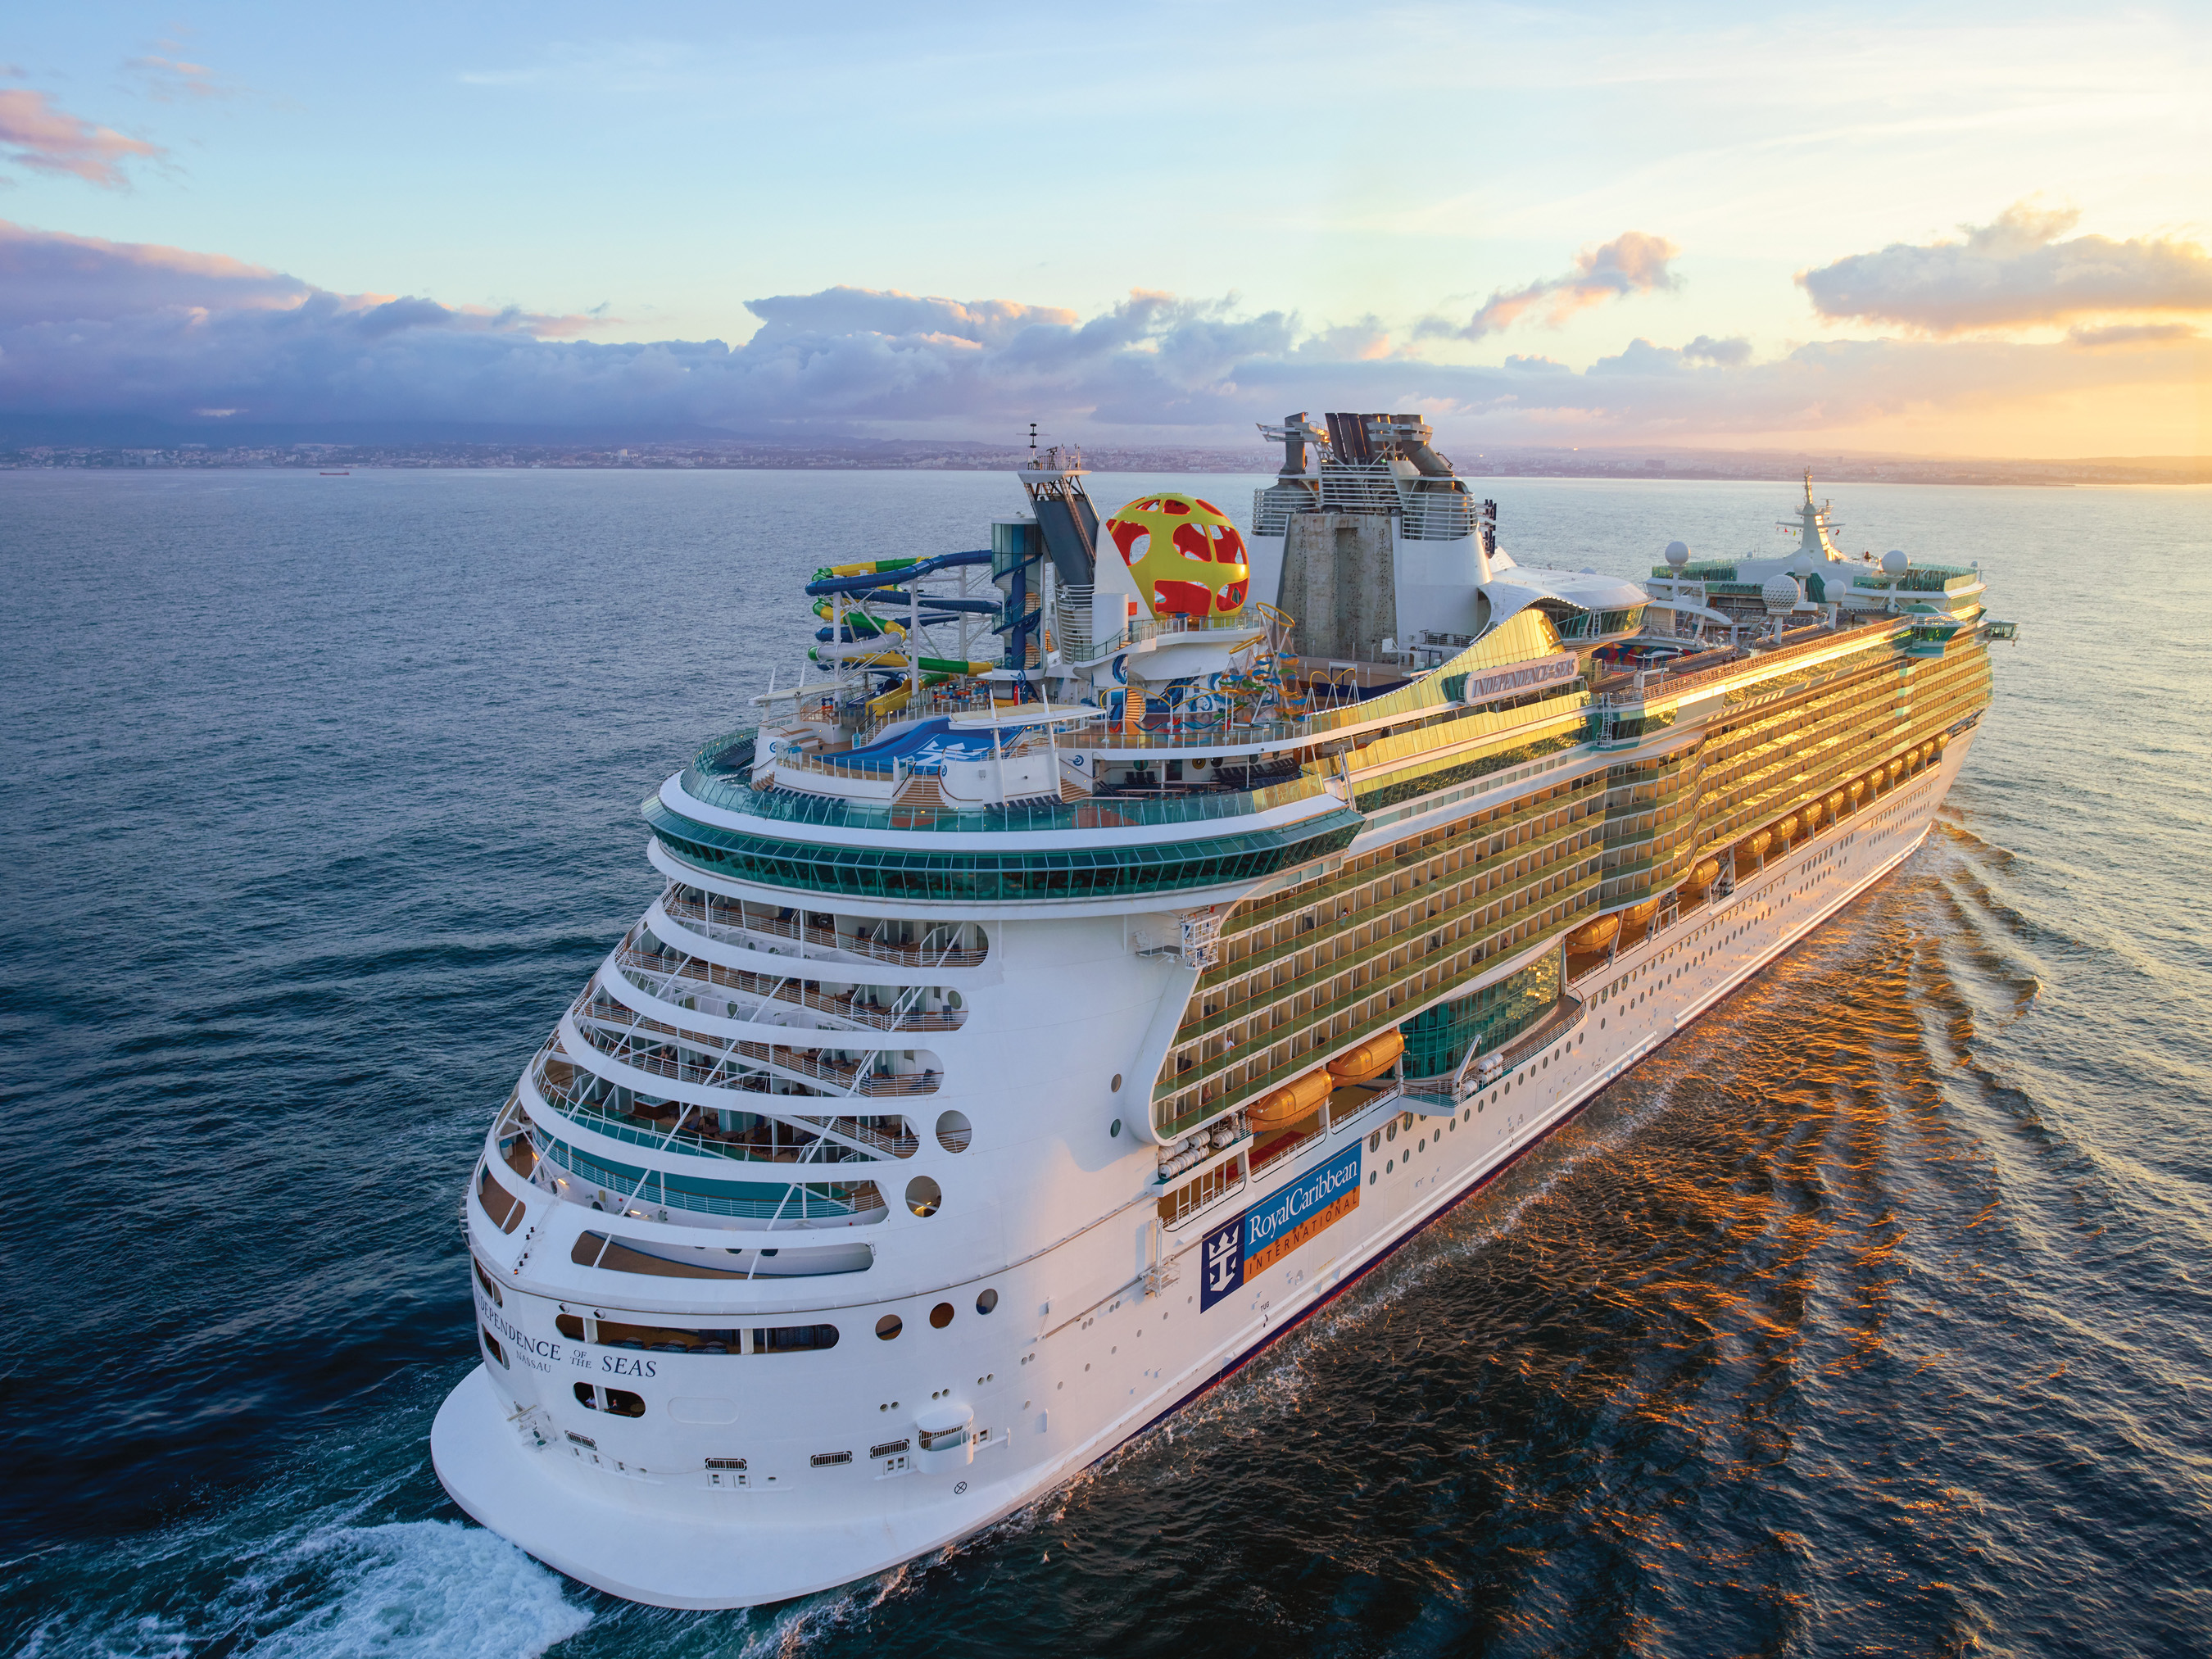 The amplified Independence of the Seas touts adventure for everyone, from the FlowRider surf simulator, to glow-in-the-dark laser tag and the first VR, bungee trampoline experience in Sky Pad.